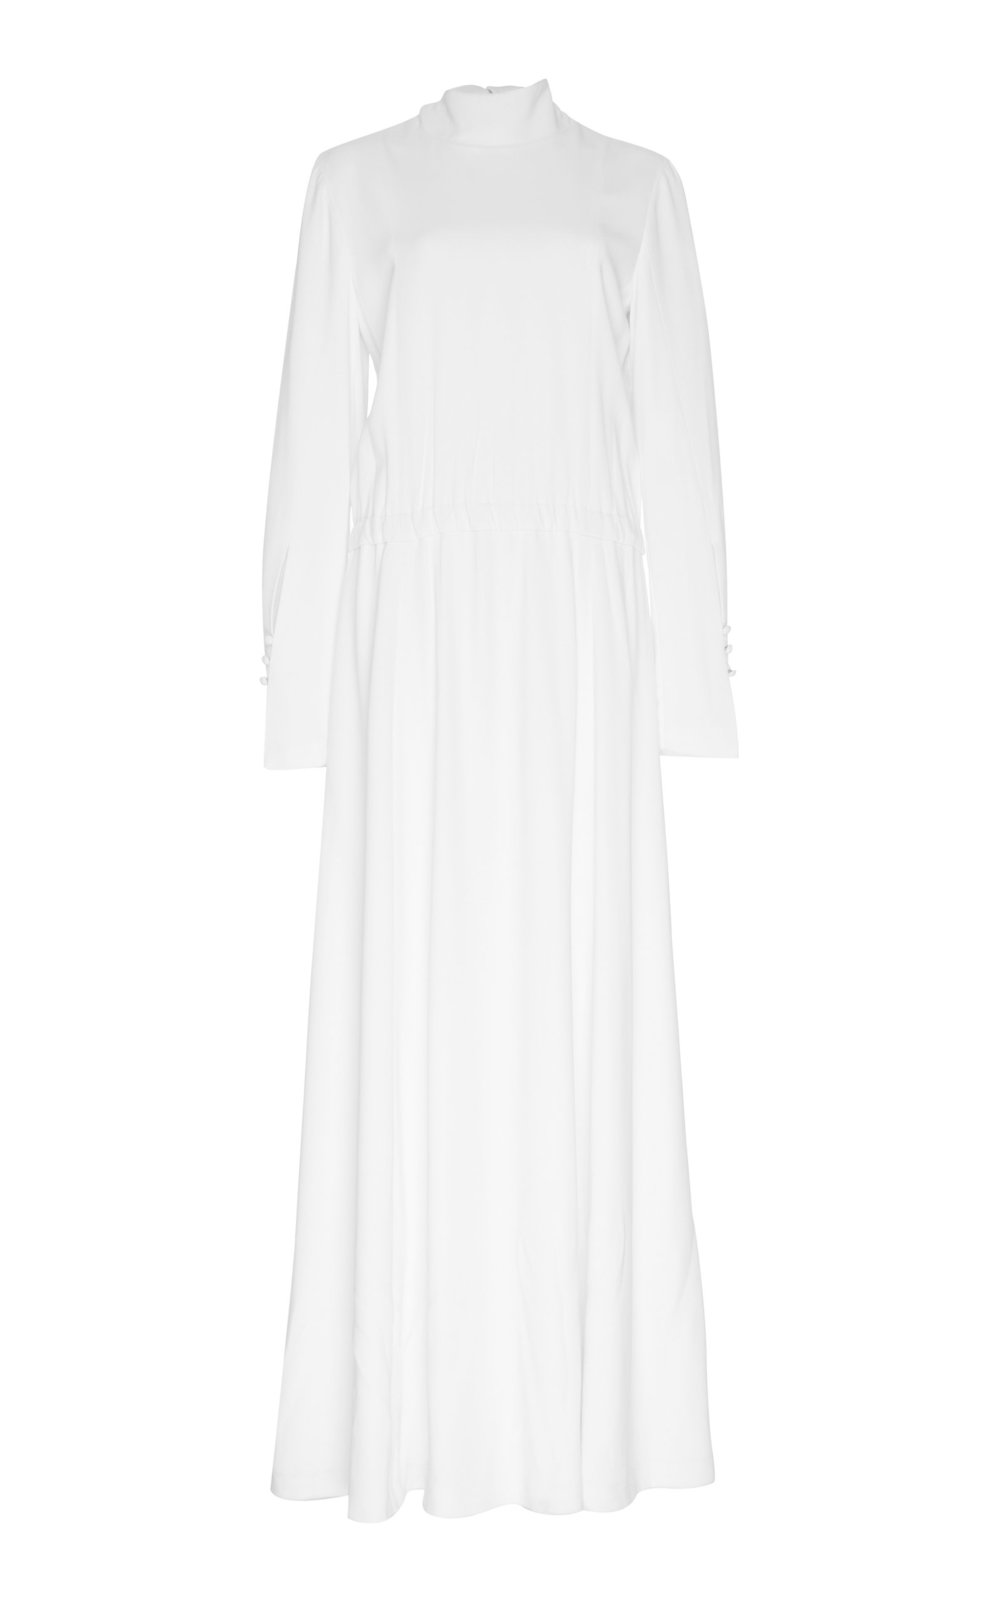 Veronica Silk Dress - IVORY  A simple yet chic Silk dress with a tie-up collar and long sleeves. Easily cinched at the waistline, the supple fabric falls into a pleated maxi hem. The minimalistic silhouette creates an effortlessly elegant look.